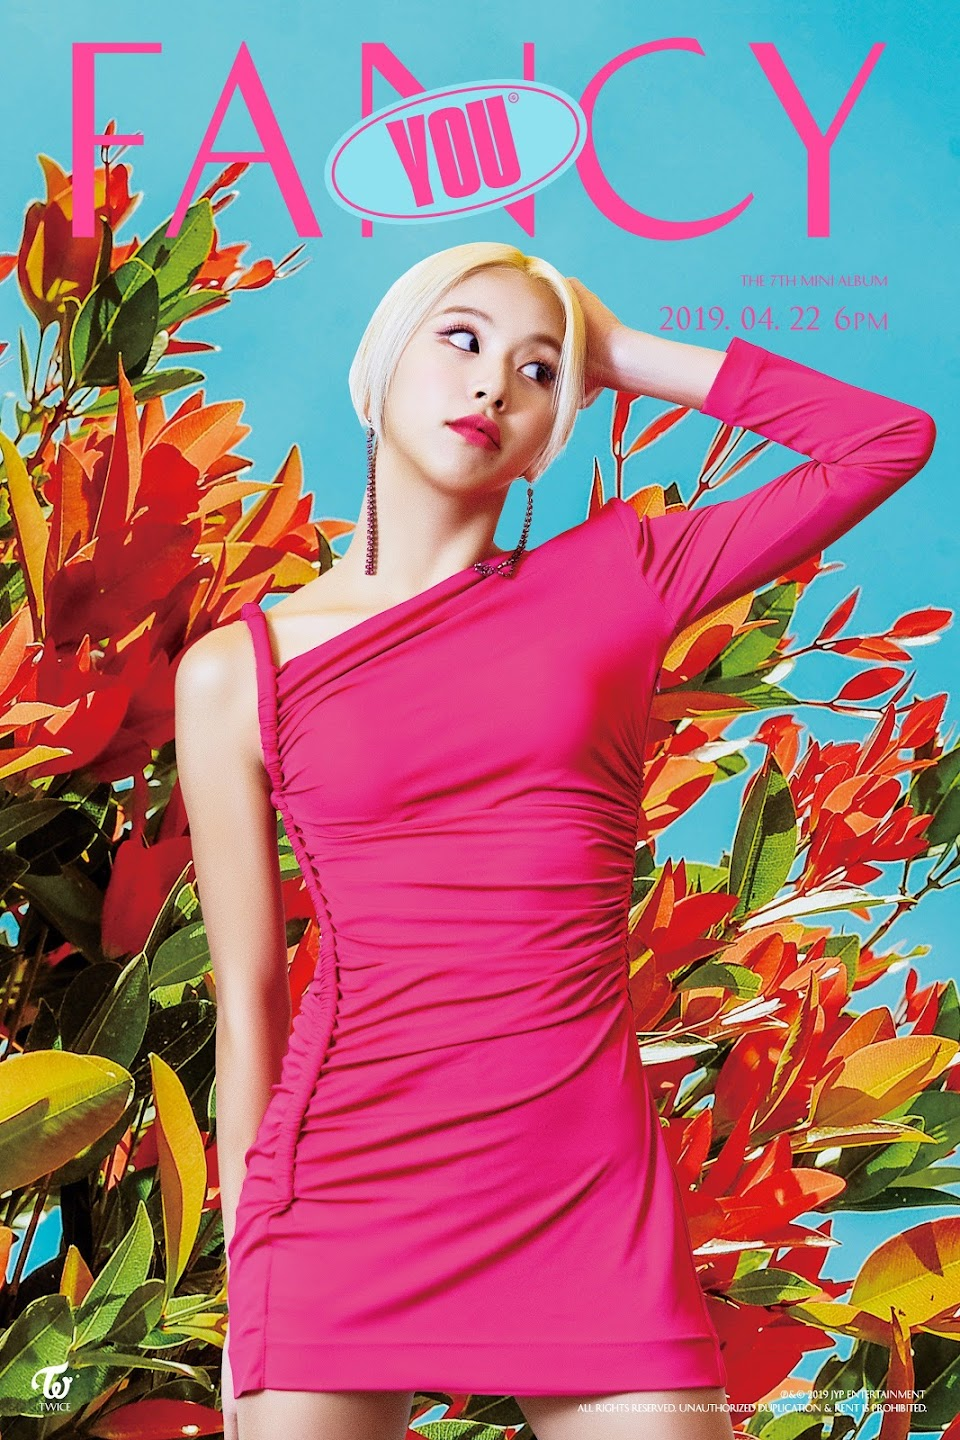 Fancy_Chaeyoung_Teaser_1